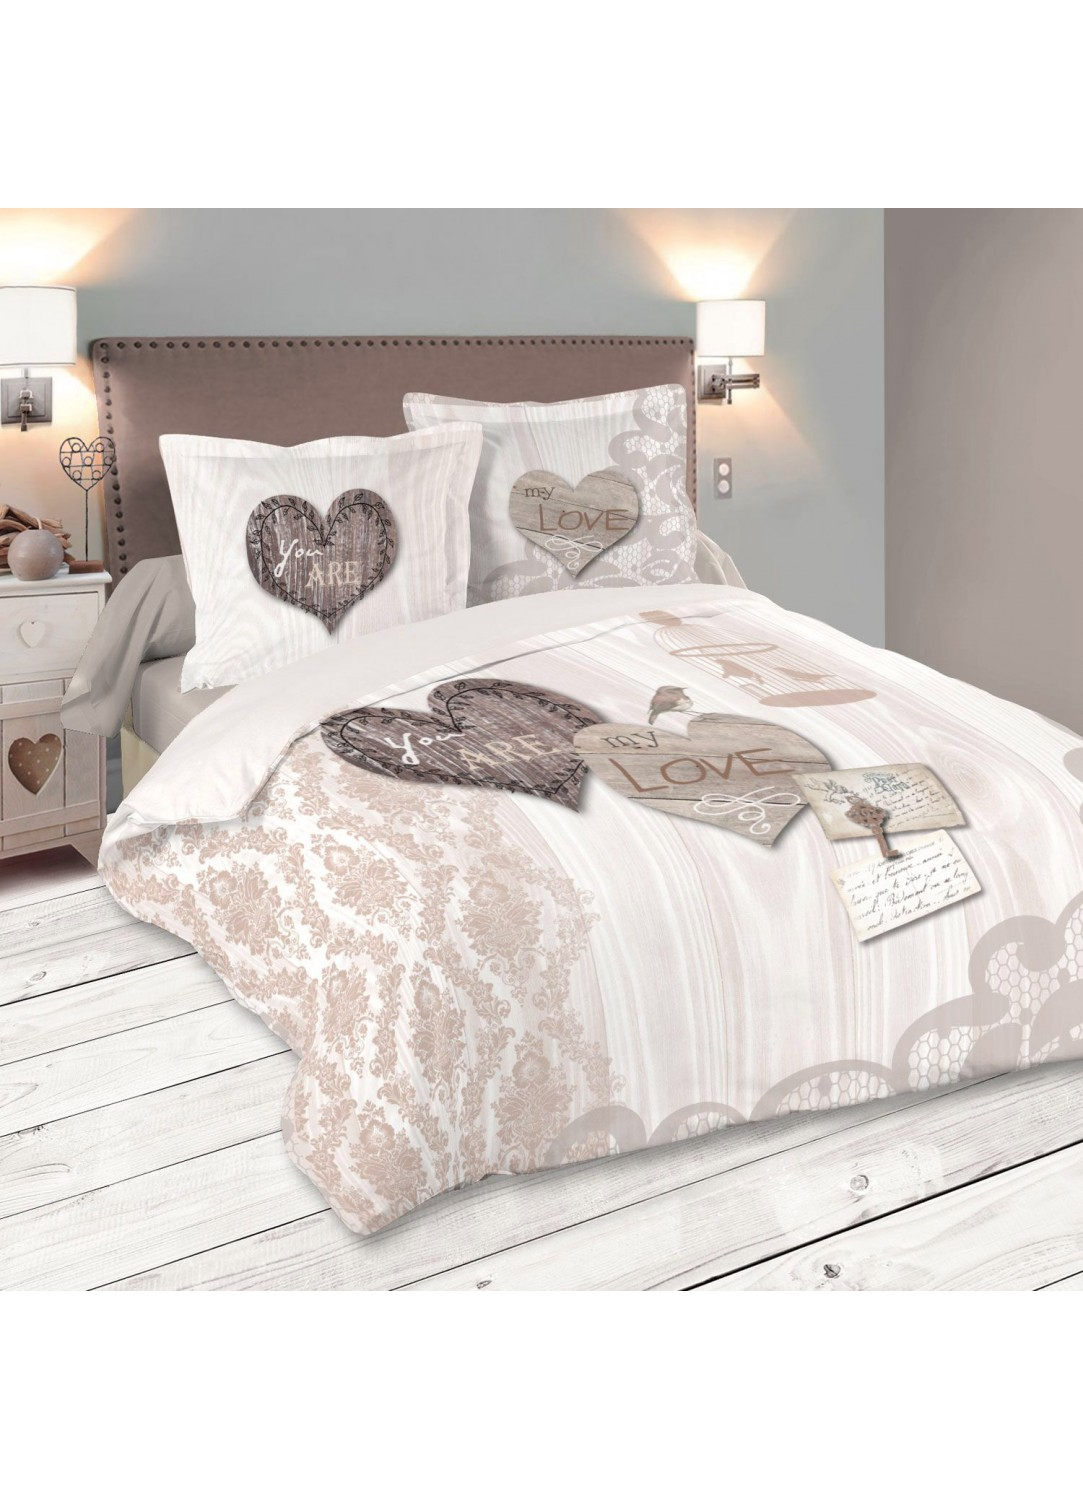 parure de couette you are my love beige homemaison vente en ligne parures de lit. Black Bedroom Furniture Sets. Home Design Ideas